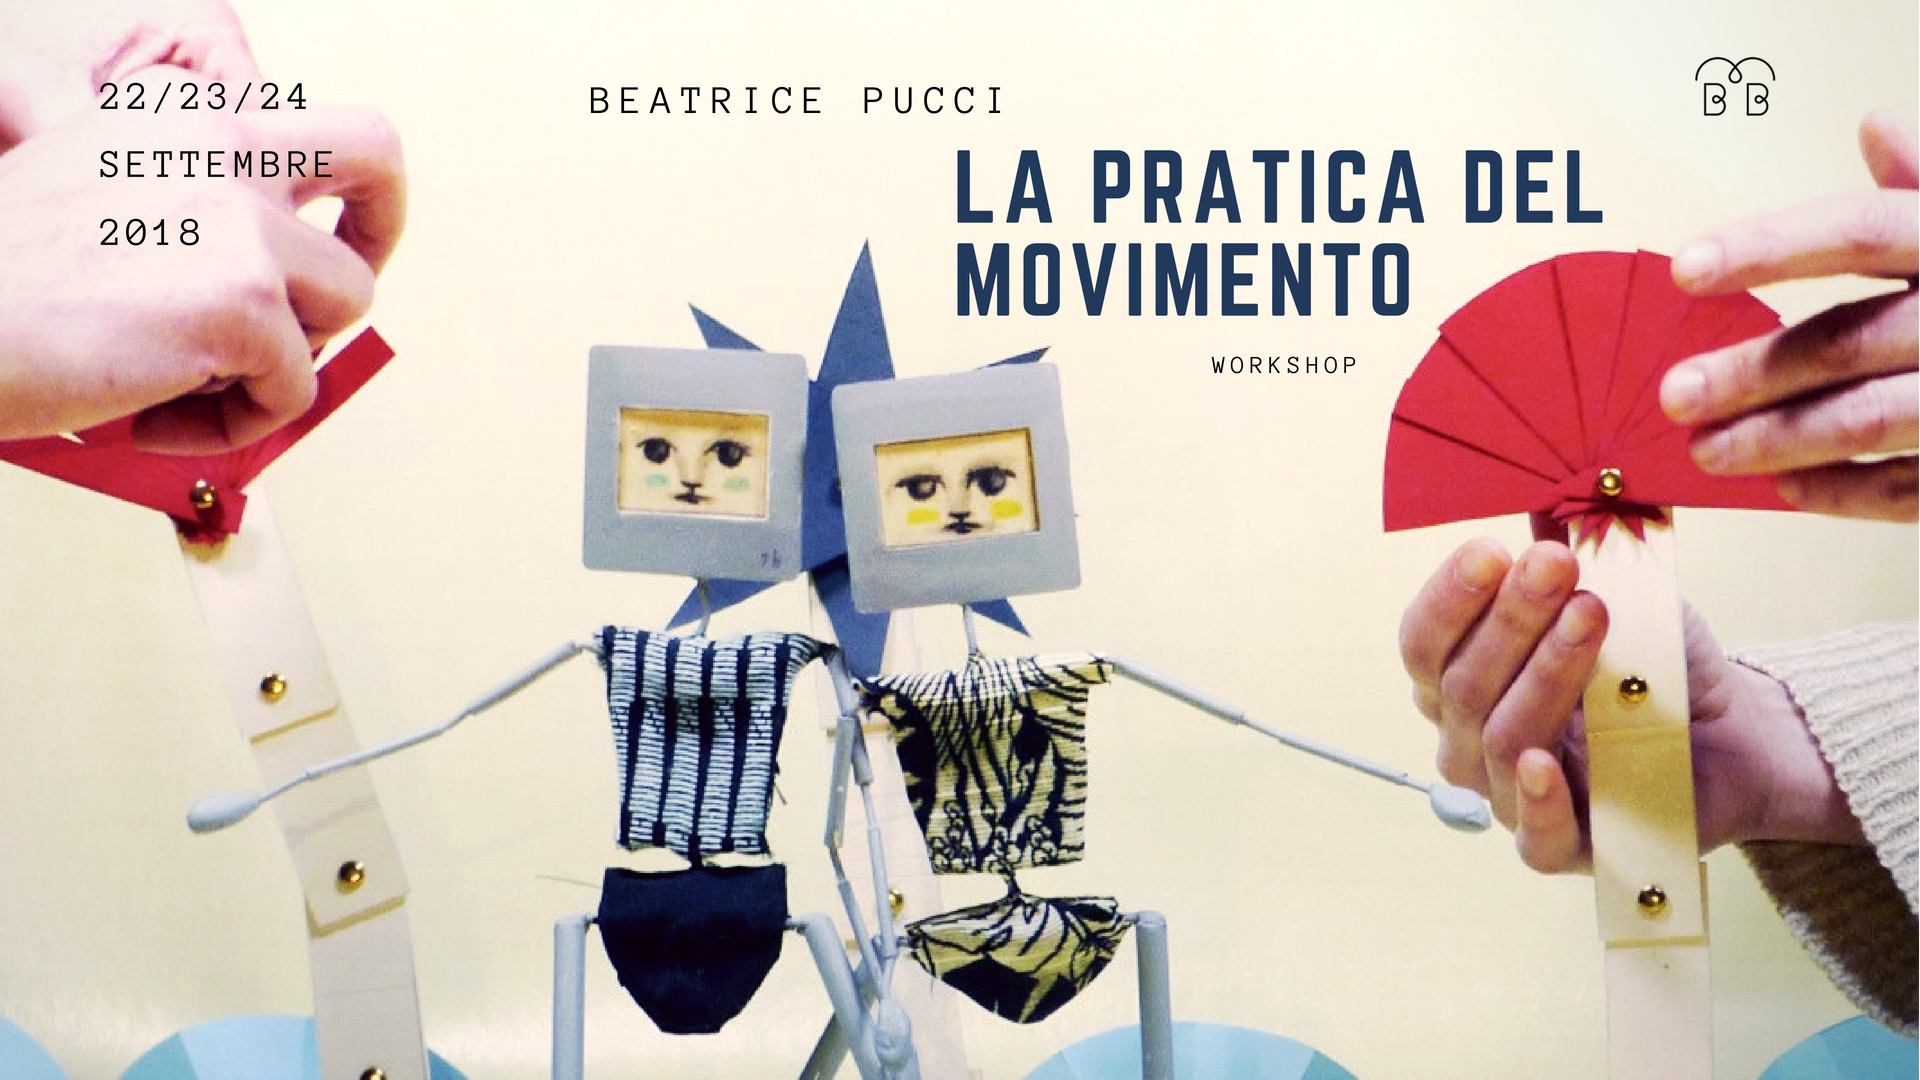 La pratica del movimento, Workshop di stop motion animation a cura di Beatrice Pucci